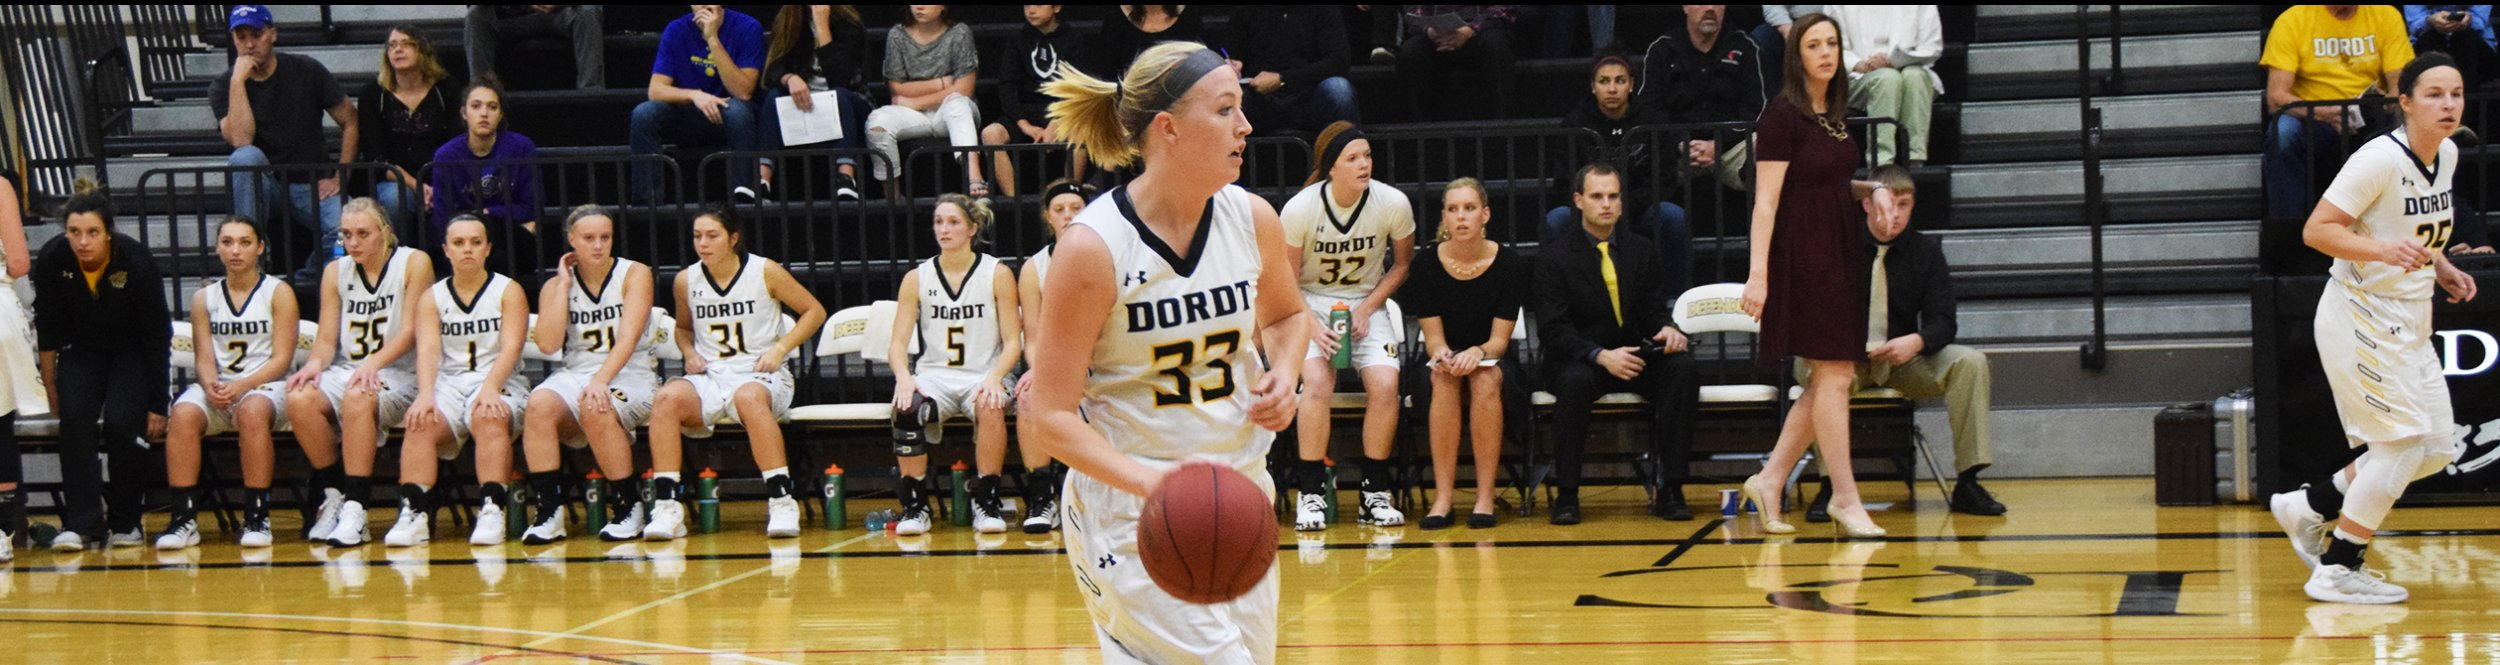 A women's basketball player dribbles the ball at Dordt.